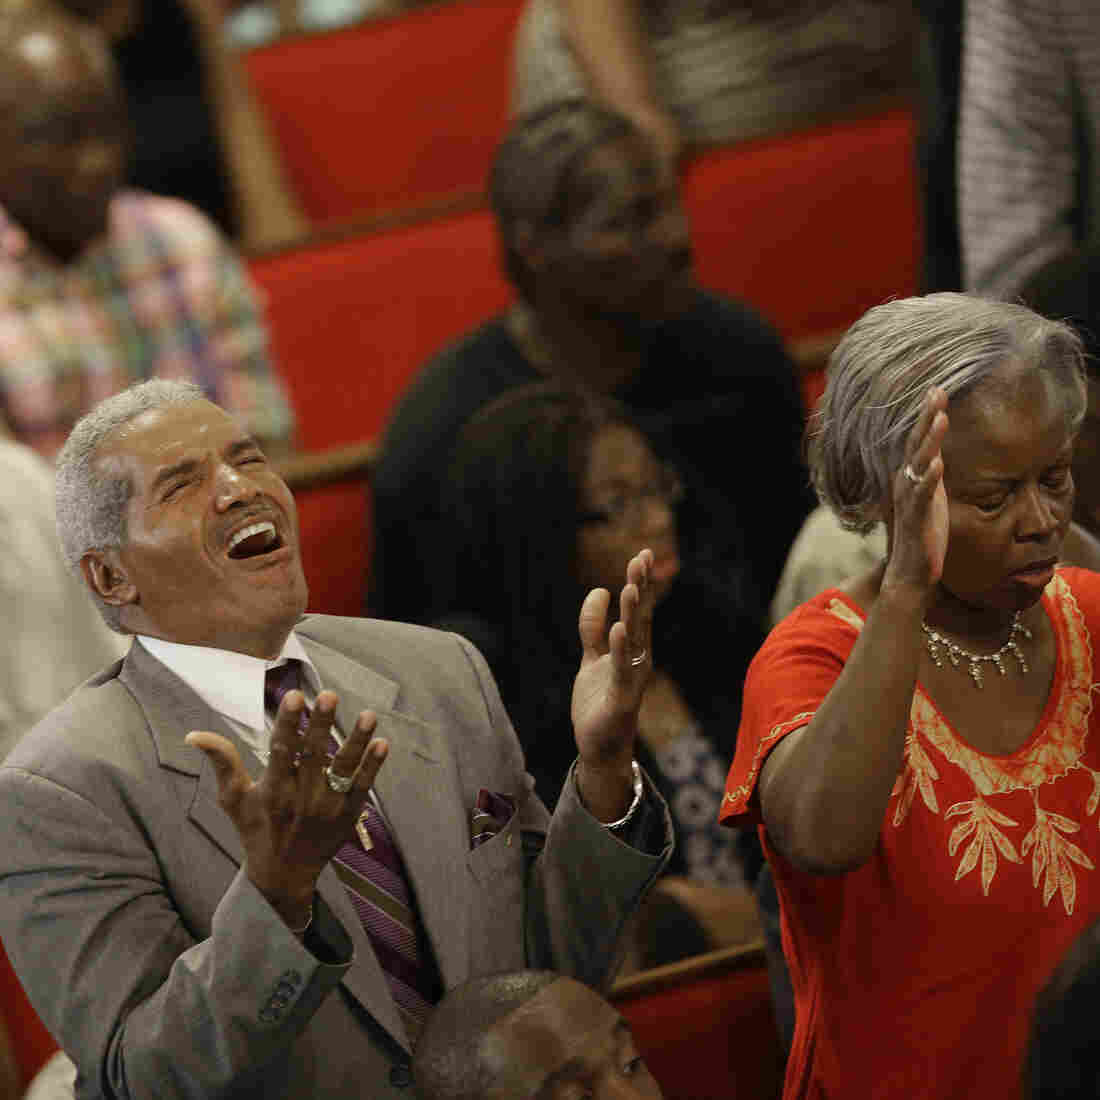 Mourners gathered at the Emanuel African Methodist Episcopal Church in Charleston, S.C. on Sunday.